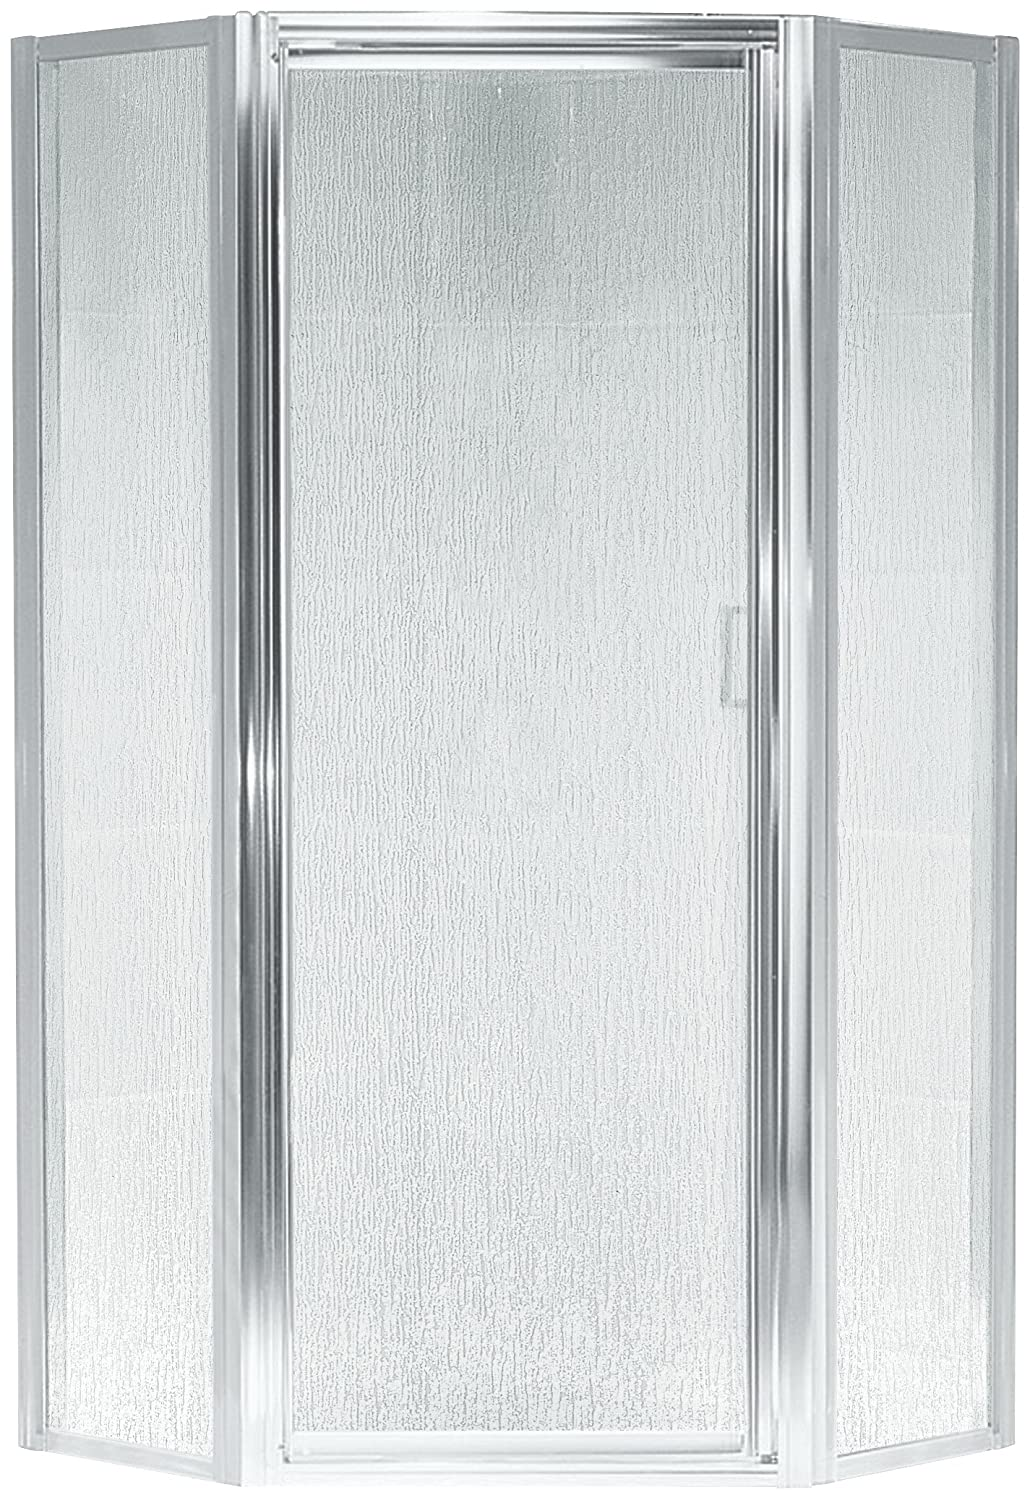 Sterling Sp2276a 38s Intrigue Neo Angle Shower Door Silver With